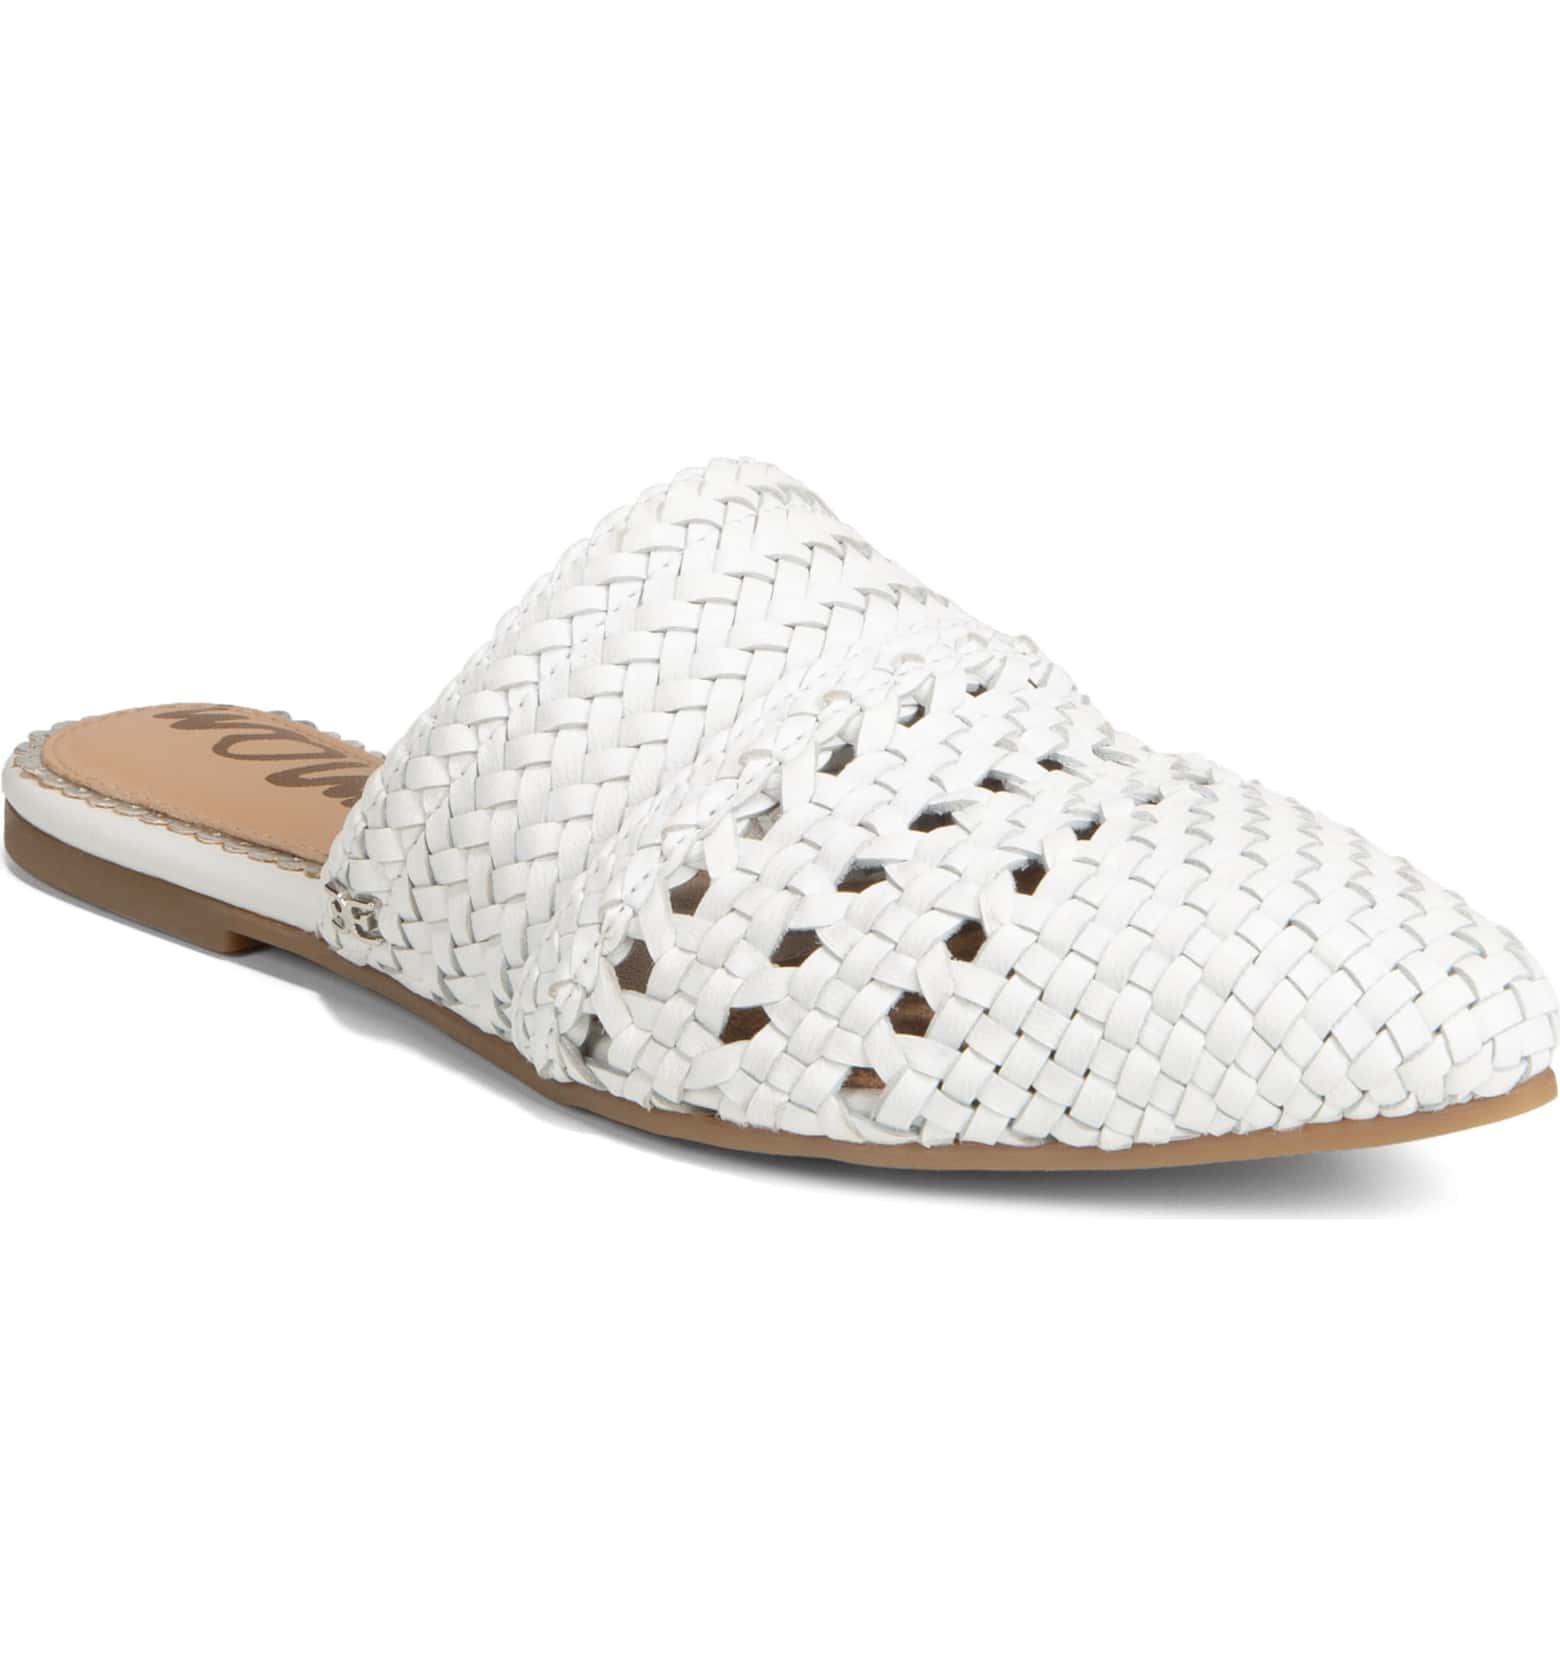 SAM EDELMAN NATALYA MULE - I'VE BEEN SEEING THIS SHOE AROUND A LOT LATELY. TO THE POINT WHERE I THINK ABOUT THEM OFTEN. AGAIN, LET'S NOT JUDGE ABOUT HOW MUCH TIME I SPEND THINKING OF MY WARDROBE!I DON'T CURRENTLY HAVE THESE SHOES BUT THEY'RE IN MY CART AT NORDSTROM AS WE SPEAK. I'M A SIZE 8 IF ANYBODY WANTS TO GIFT THEM TO ME!